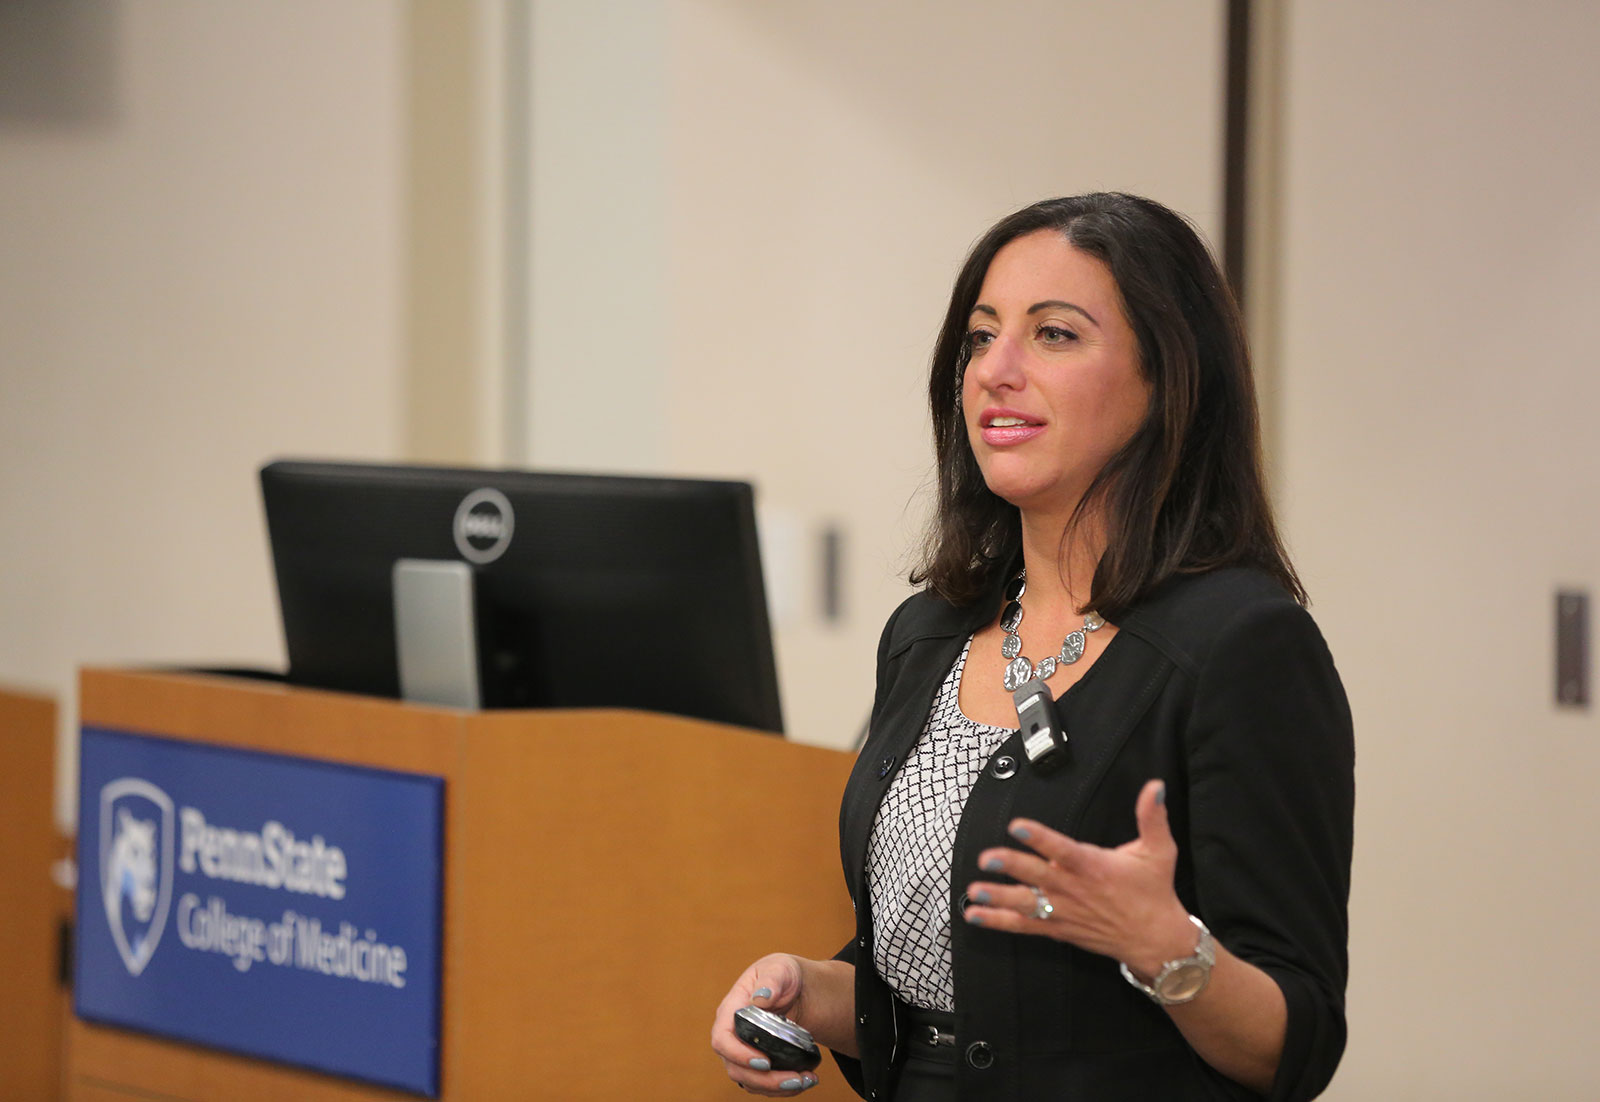 Lori Gavrin, PhD, Director of Business Development for the Platform & Technology Sciences Division at GlaxoSmithKline, delivers the keynote address at the 2017 Innovation Awards ceremony at Penn State College of Medicine, which was held Nov. 28. She is pictured standing in a large conference room, with a podium and computer monitor visible behind her and to the left of the photo. The Penn State College of Medicine logo appears on the podium.